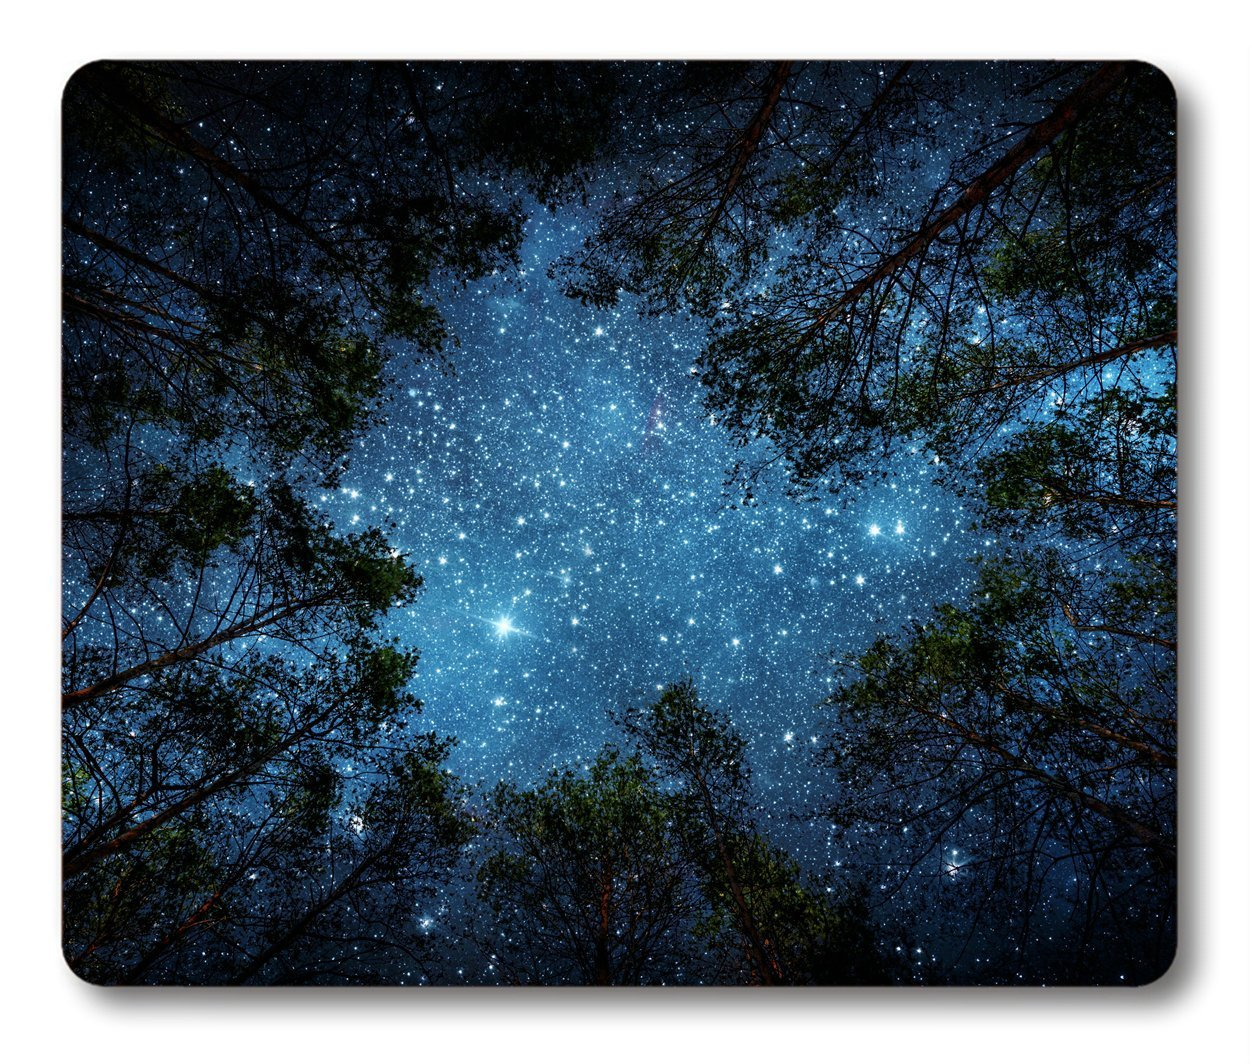 Smooffly Beautiful Night Sky Mouse Pad by, The Milky Way And the Trees Mouse Pad,Sublime Forest Nature View Rectangle Non-Slip Rubber Mousepad Gaming Mouse Pad (Night Sky)